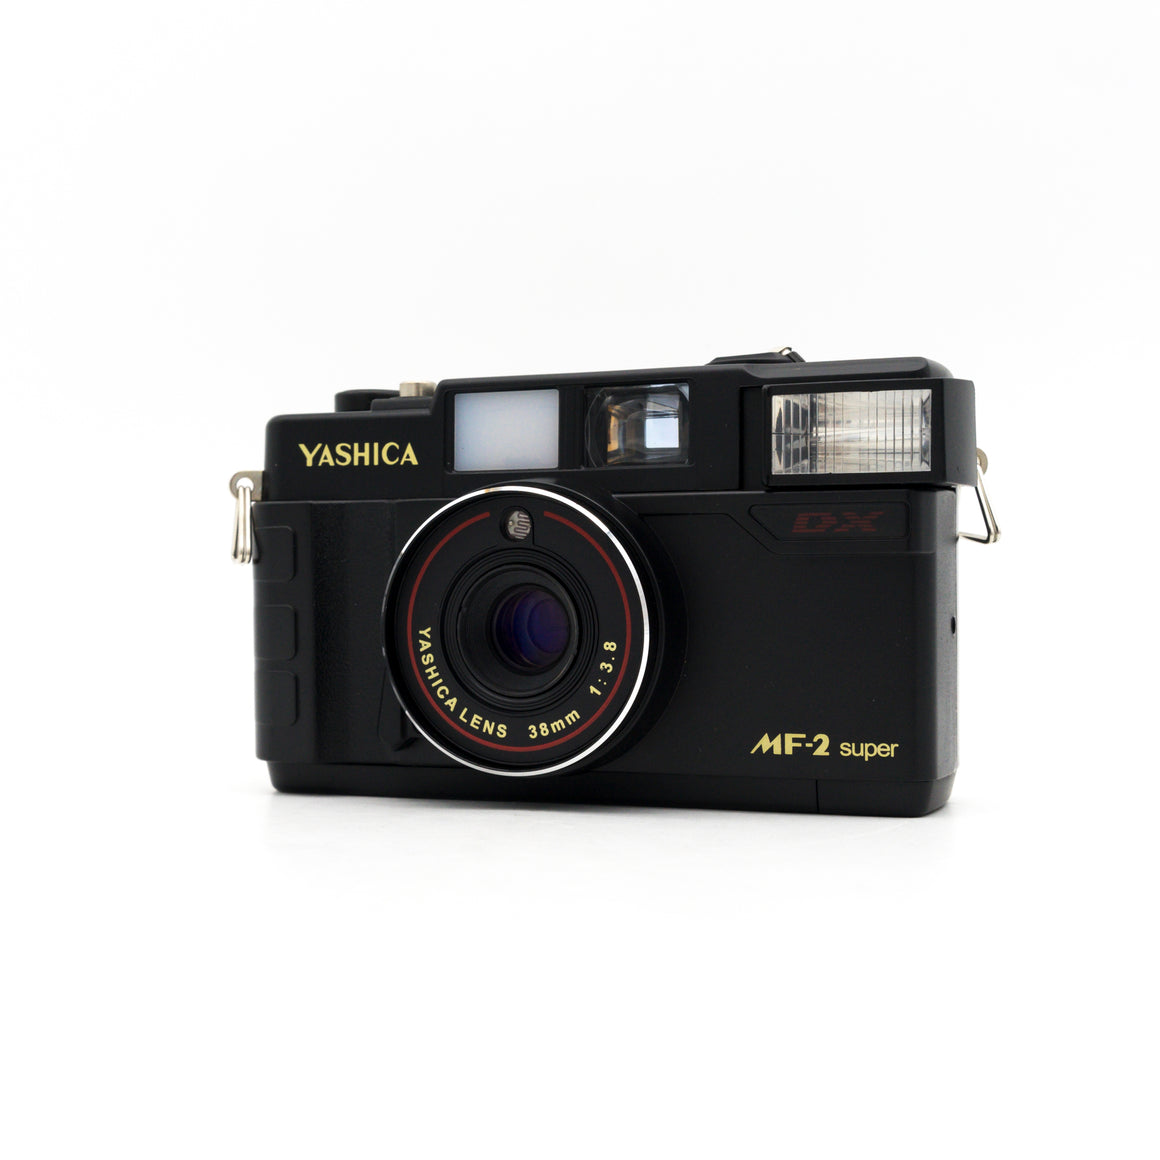 Hasselblad 500c/m + Carl Zeiss Planar T* 80mm F/2.8 Medium Format Camera